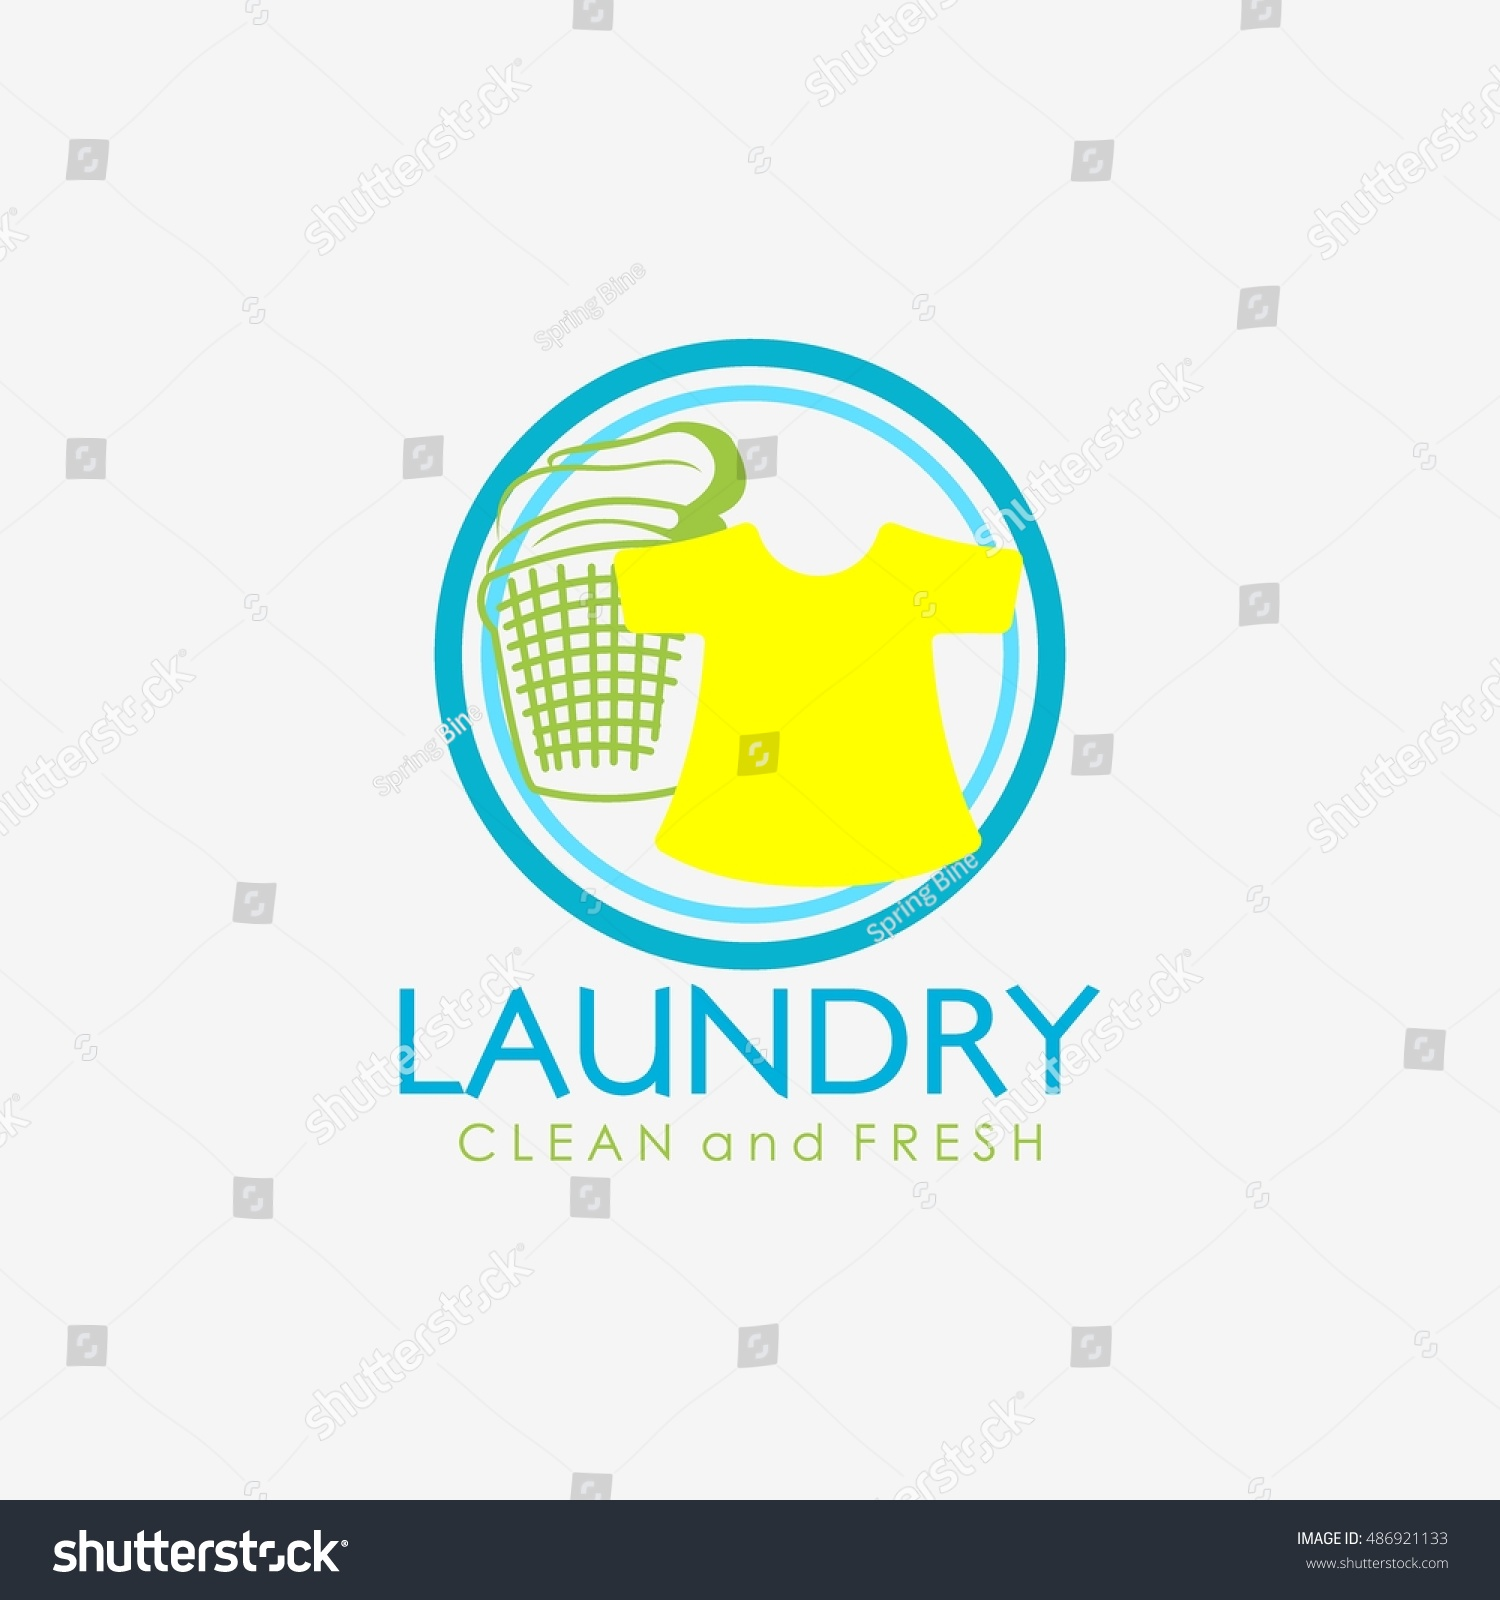 Laundry logo design template good business stock vector royalty laundry logo design template good for business logo vector illustration cheaphphosting Choice Image